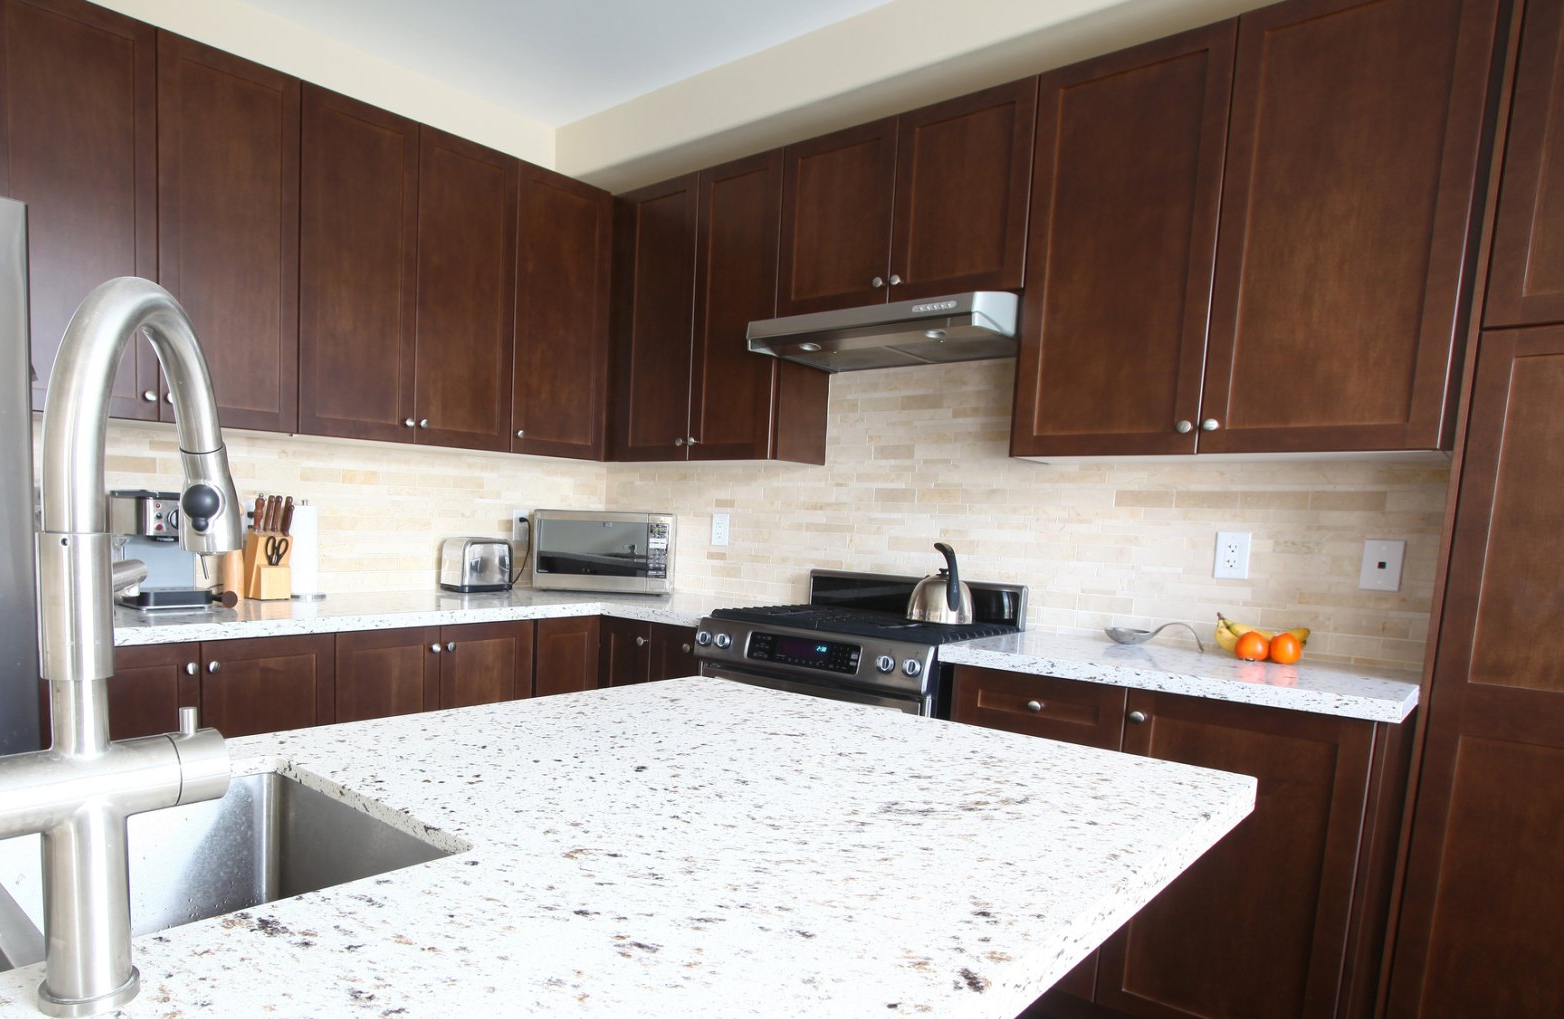 4 Kitchen Cabinet Trends For 2019